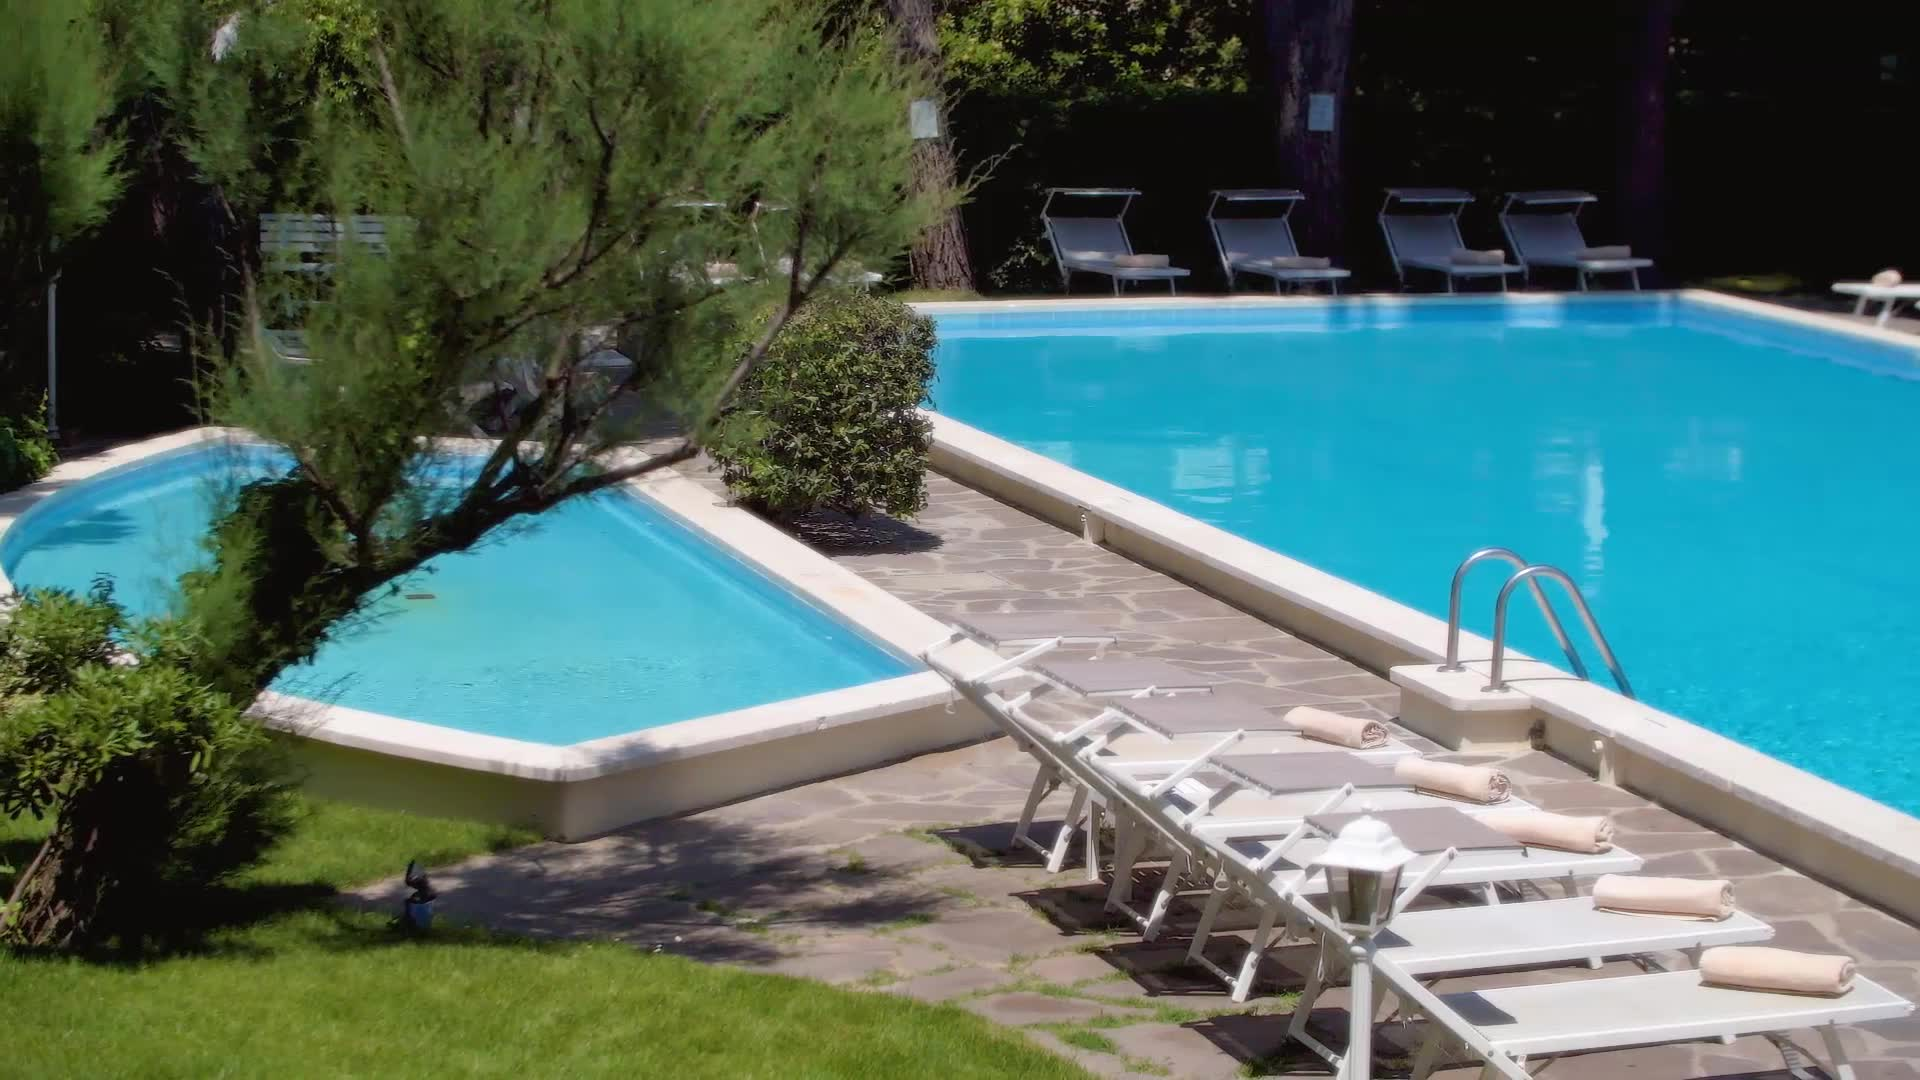 4-star Hotel Doge with large pool and garden in Milano Marittima